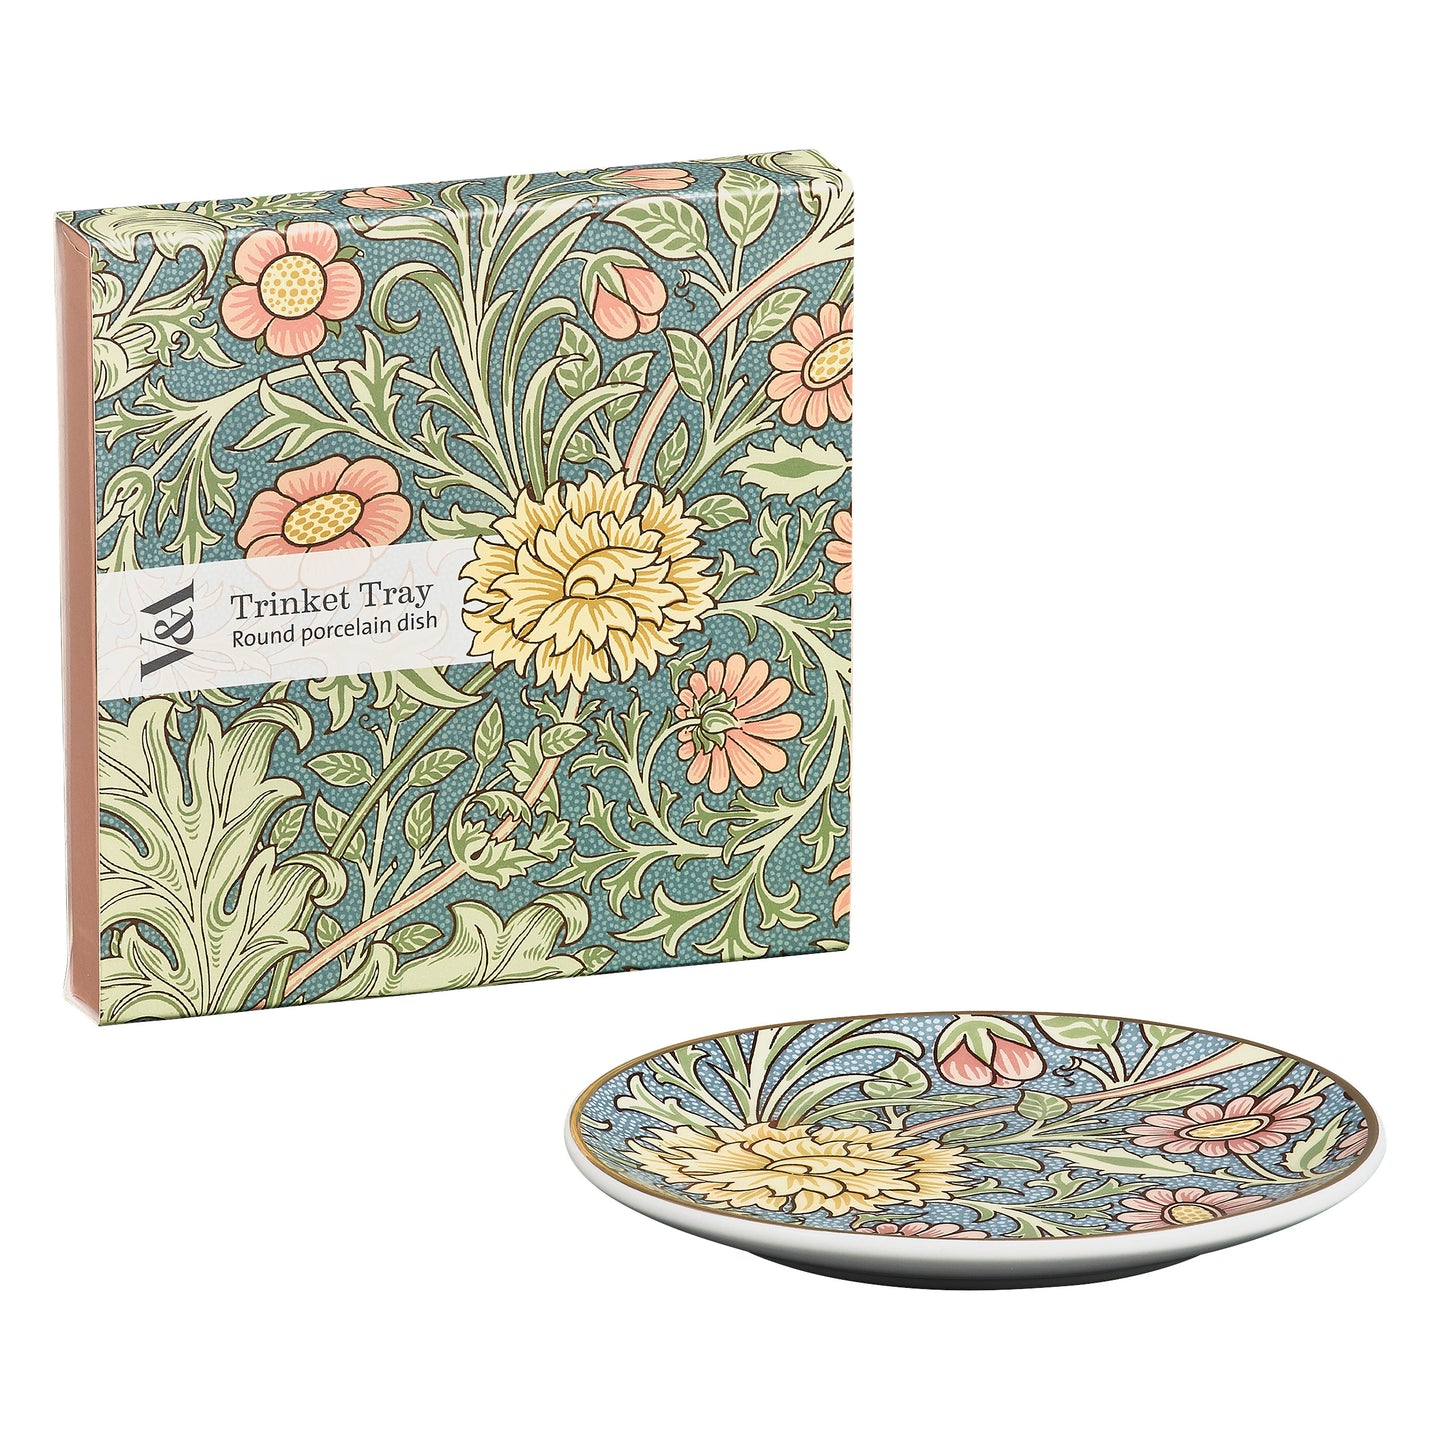 V&A Tricket Tray Main01